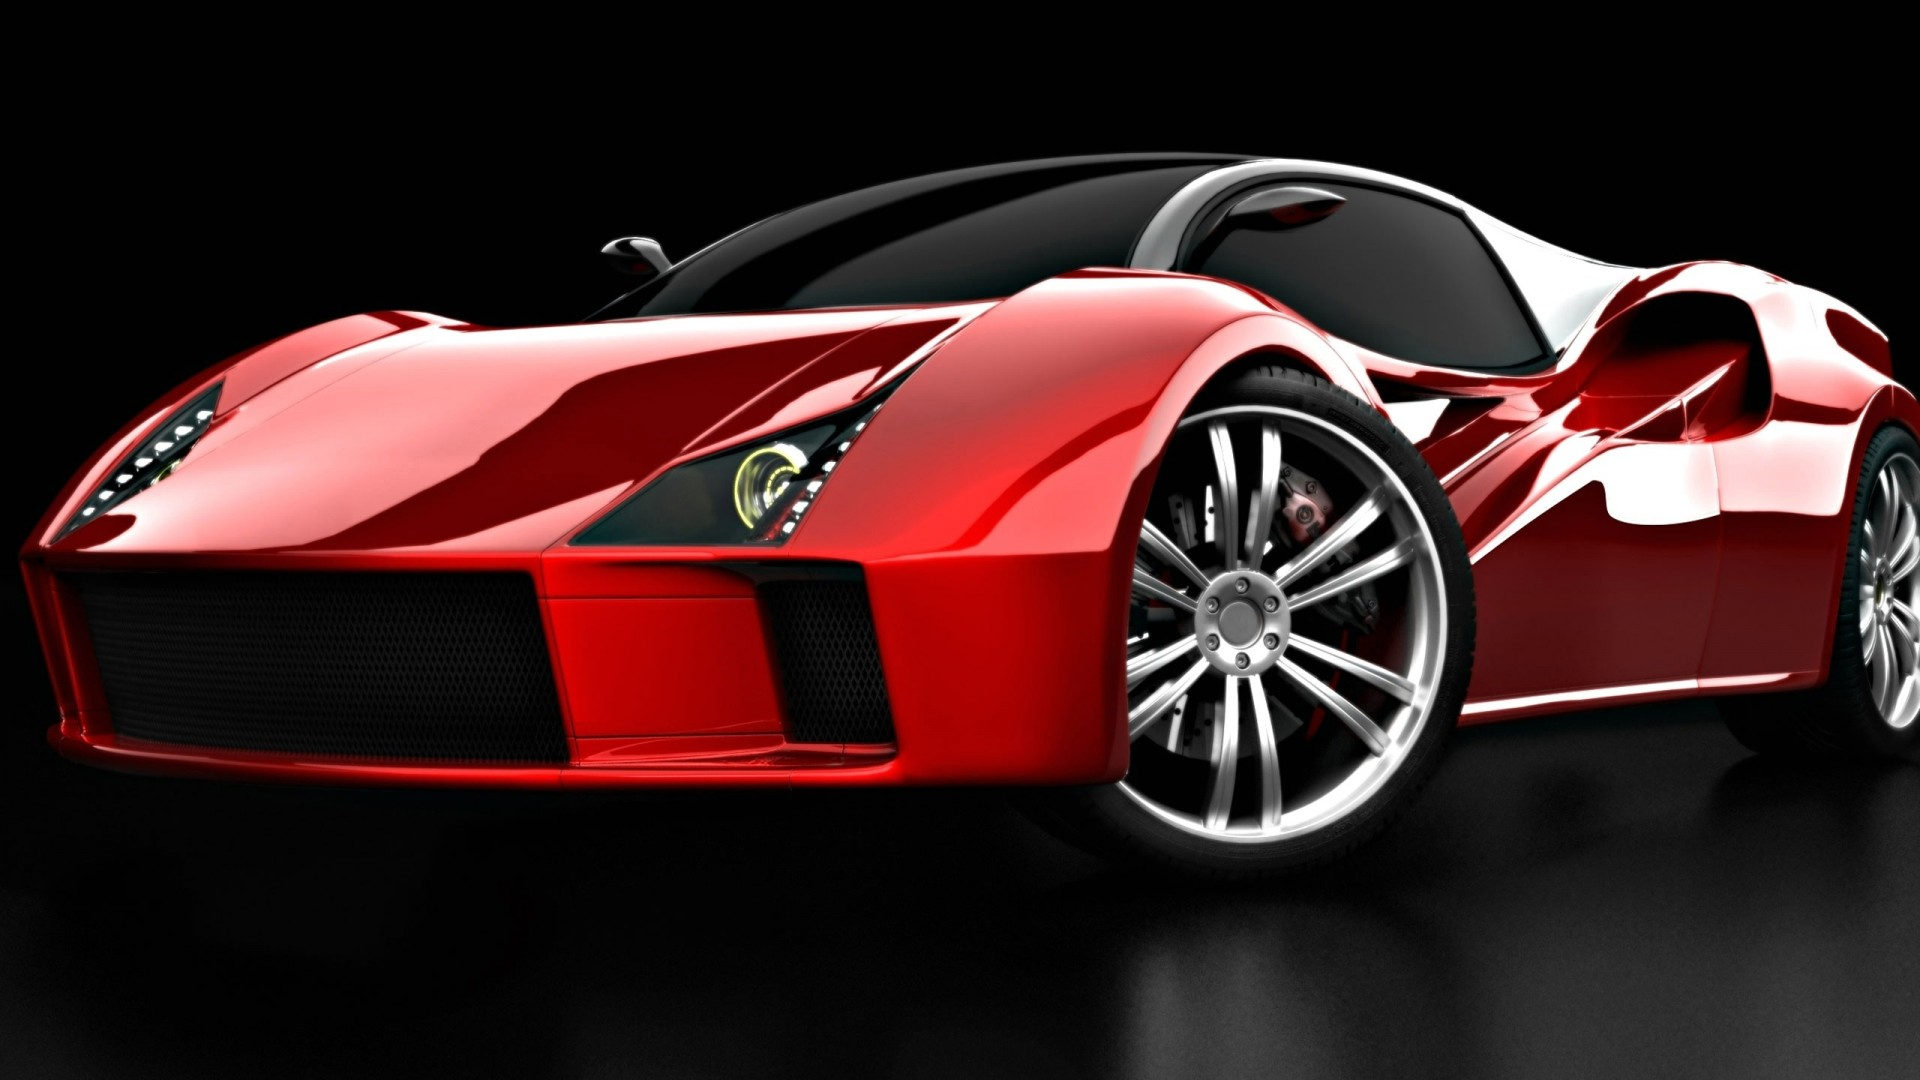 Fast Car Backgrounds Sf Wallpaper